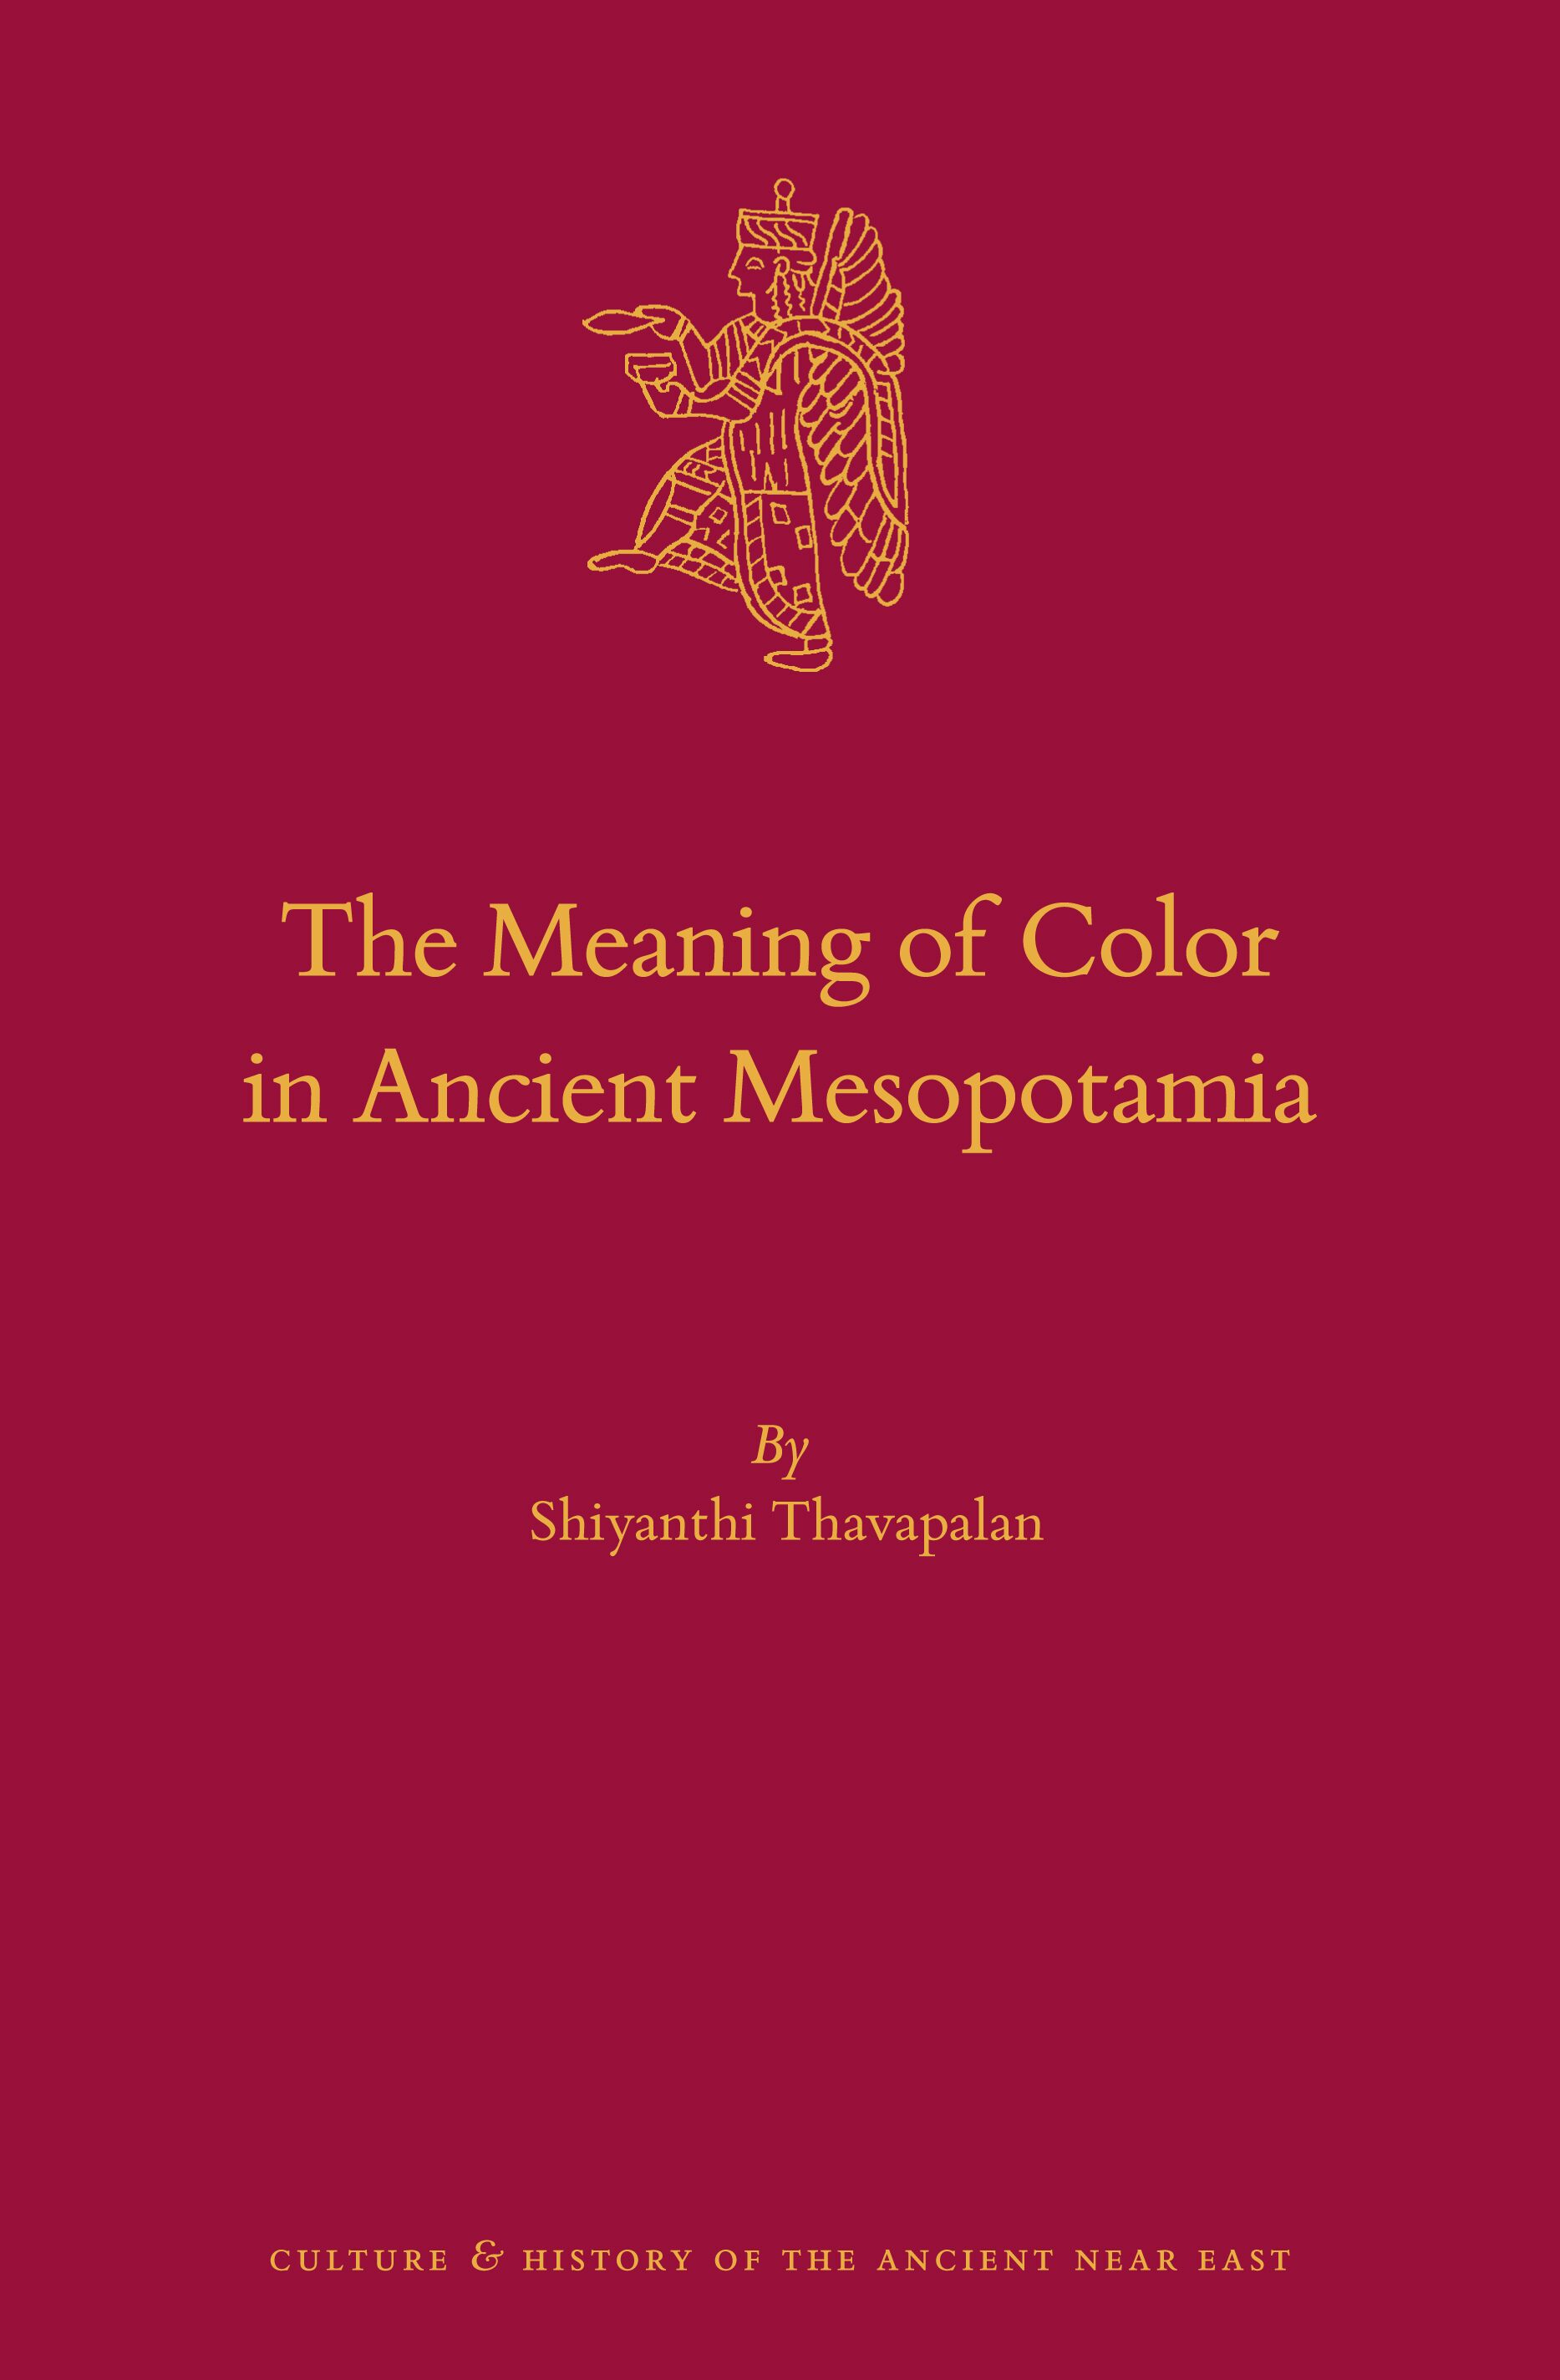 Chapter 2 Abstract Colors In The Meaning Of Color In Ancient Mesopotamia